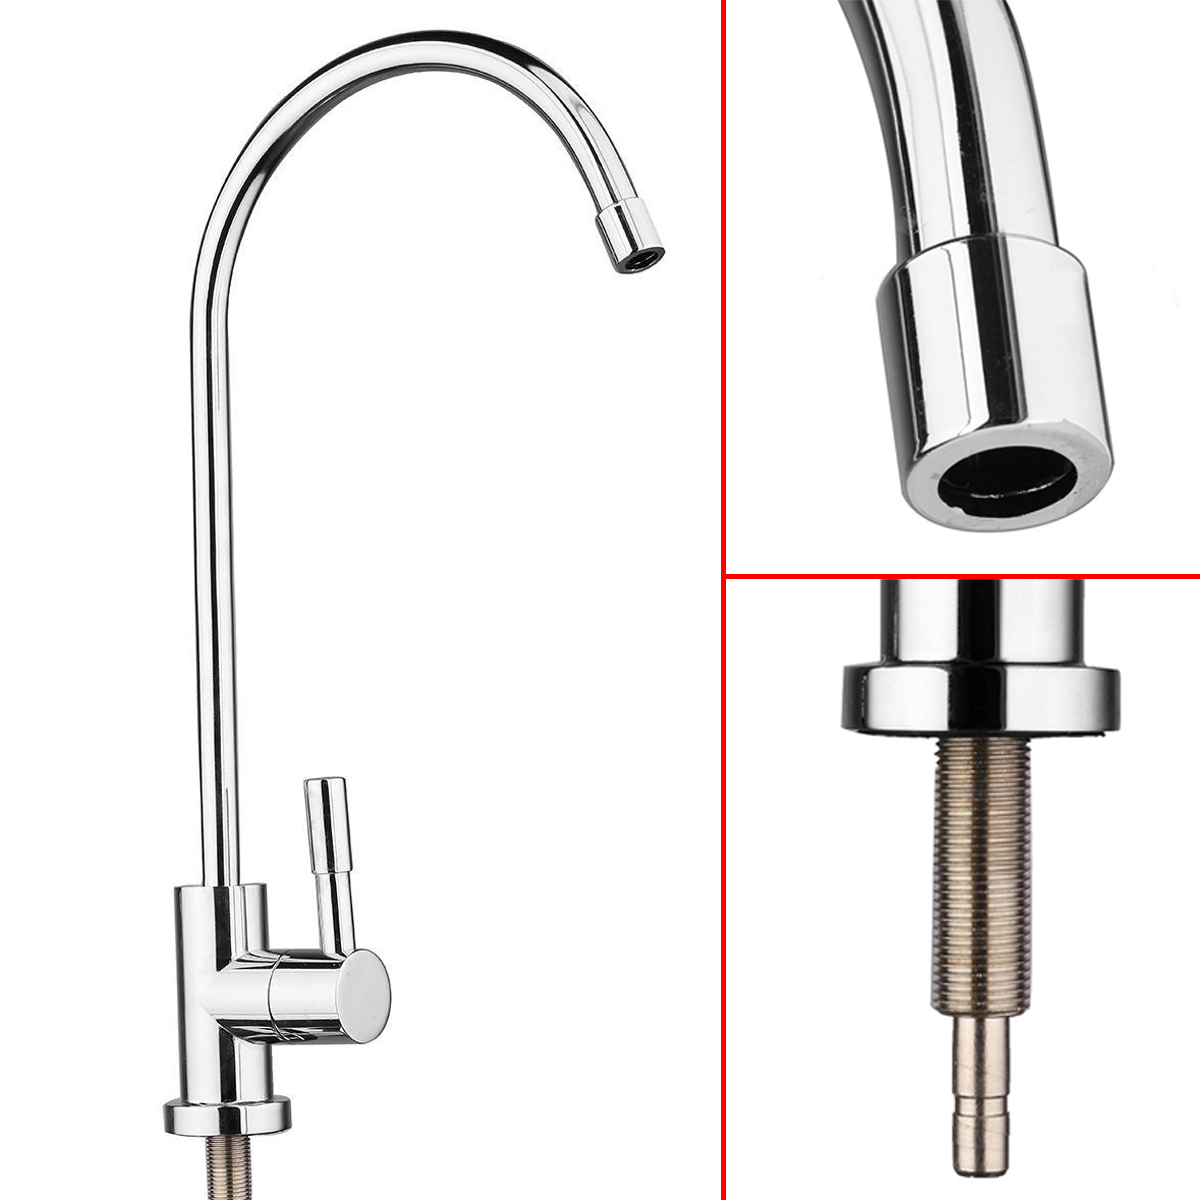 360 Degree Water Kitchen Sink Faucet Chrome Plated Finished Drinking RO Water Filter Reverse Sink Faucets